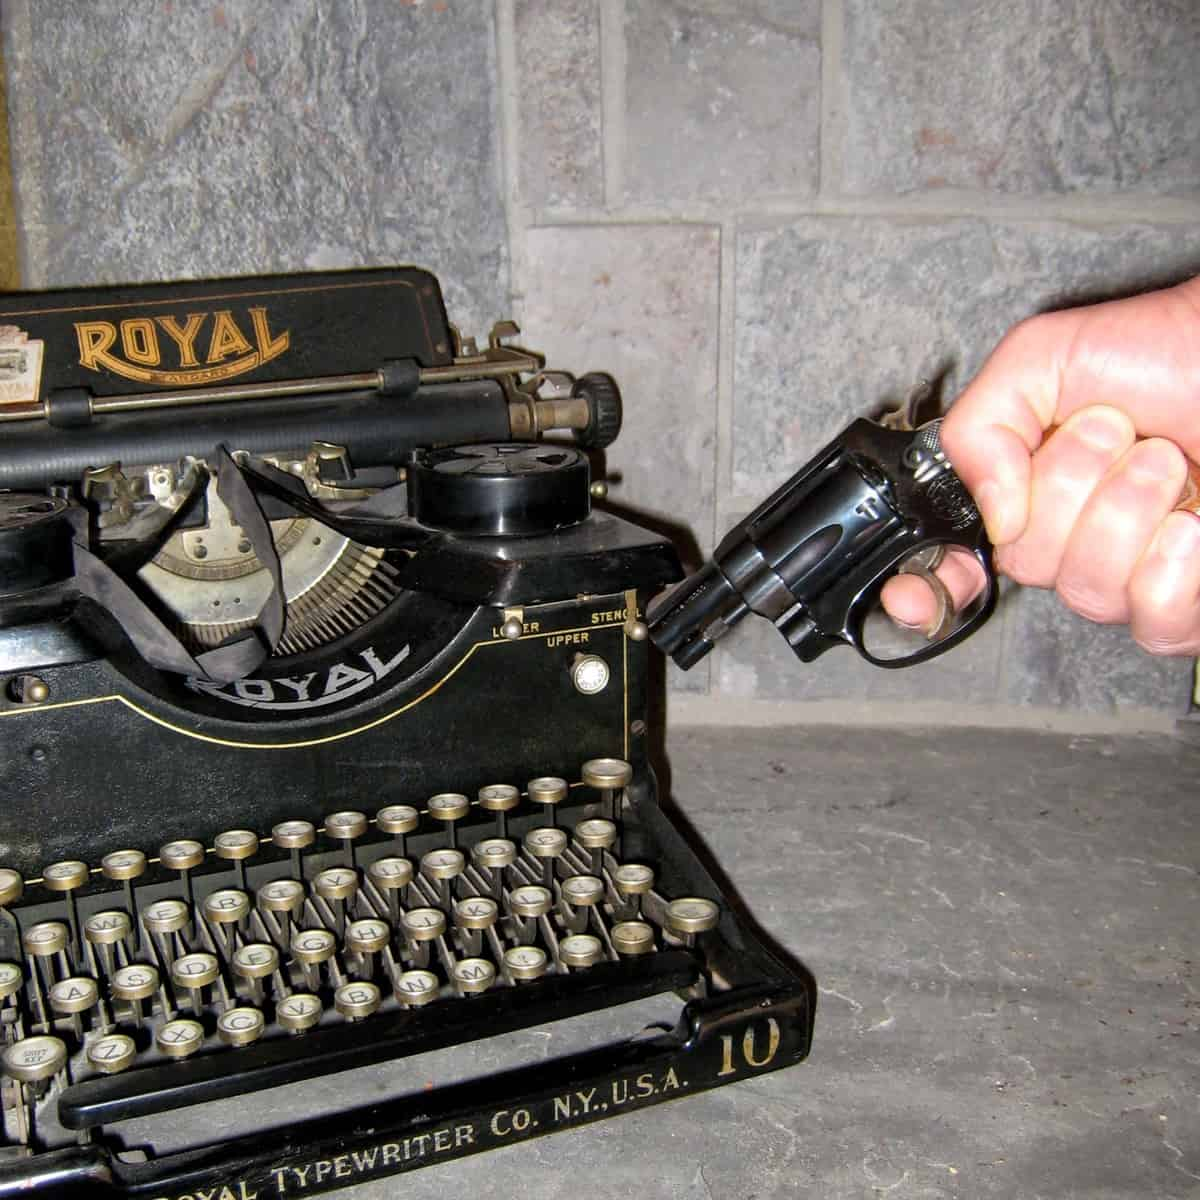 Typewriter and gun